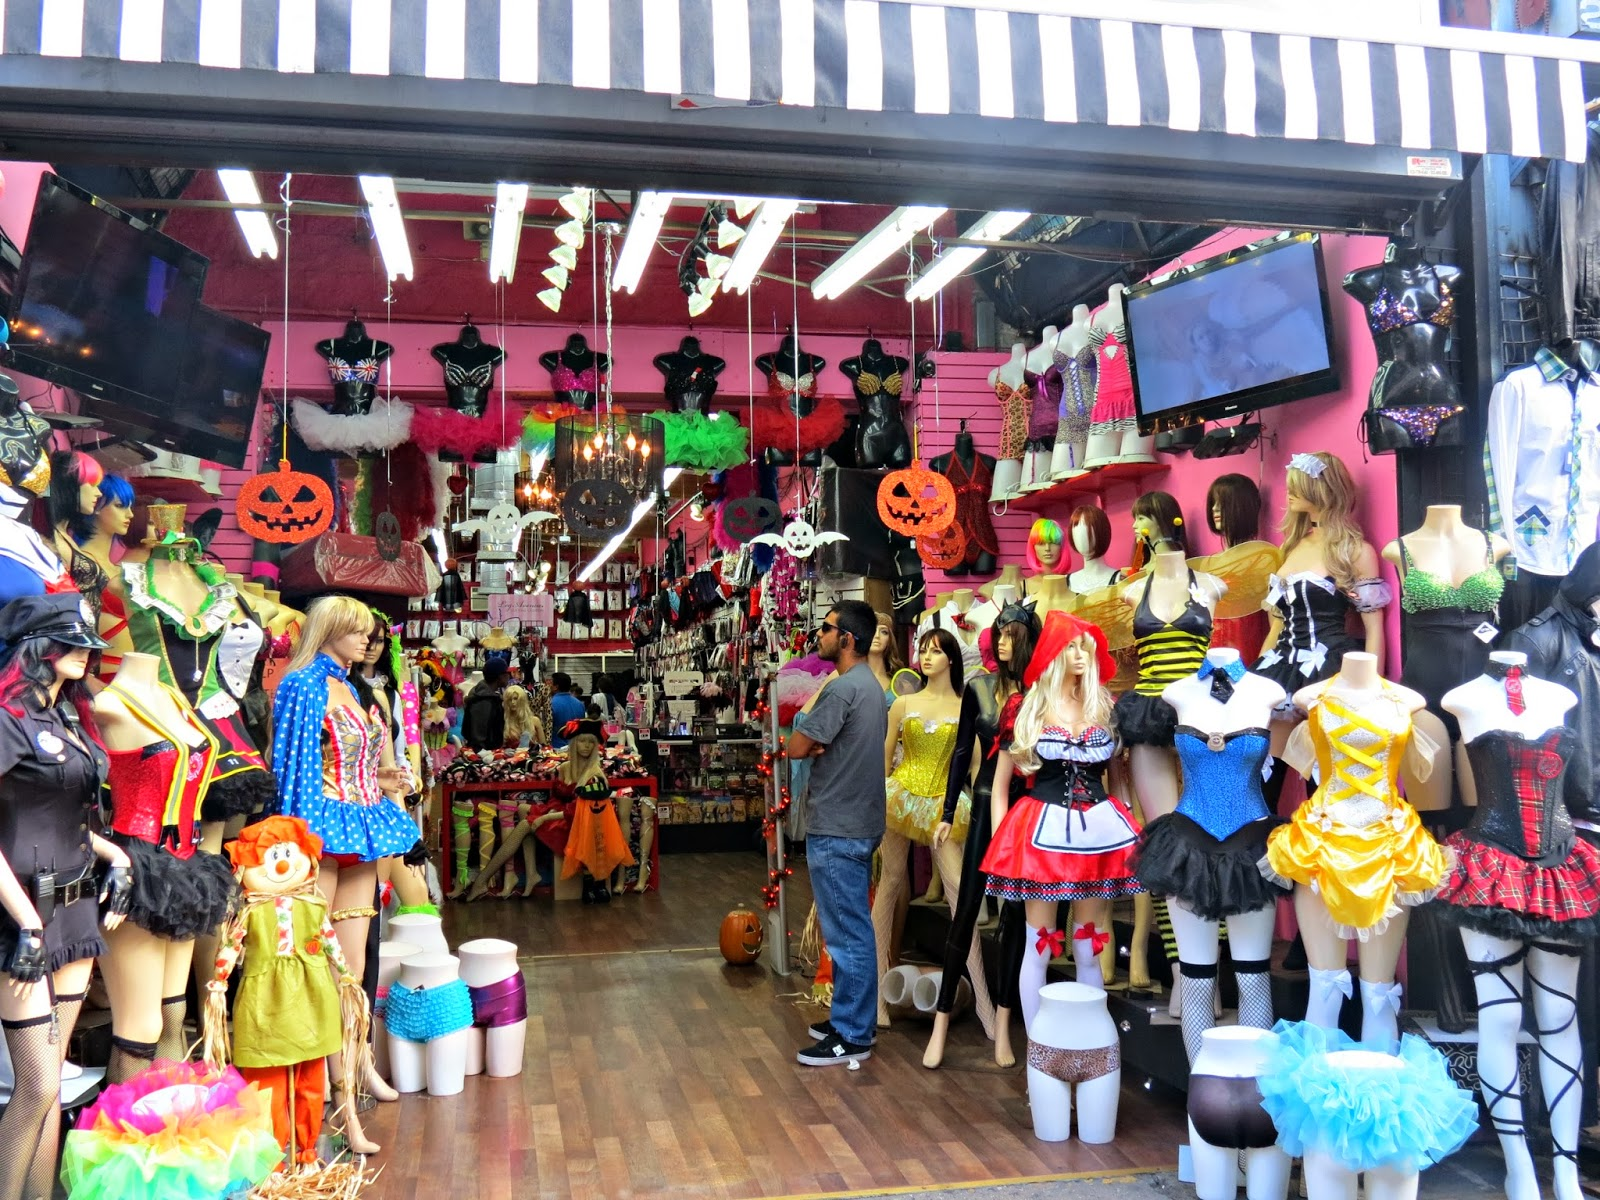 The Santee Alley Santee Alley Halloween Costume Shopping